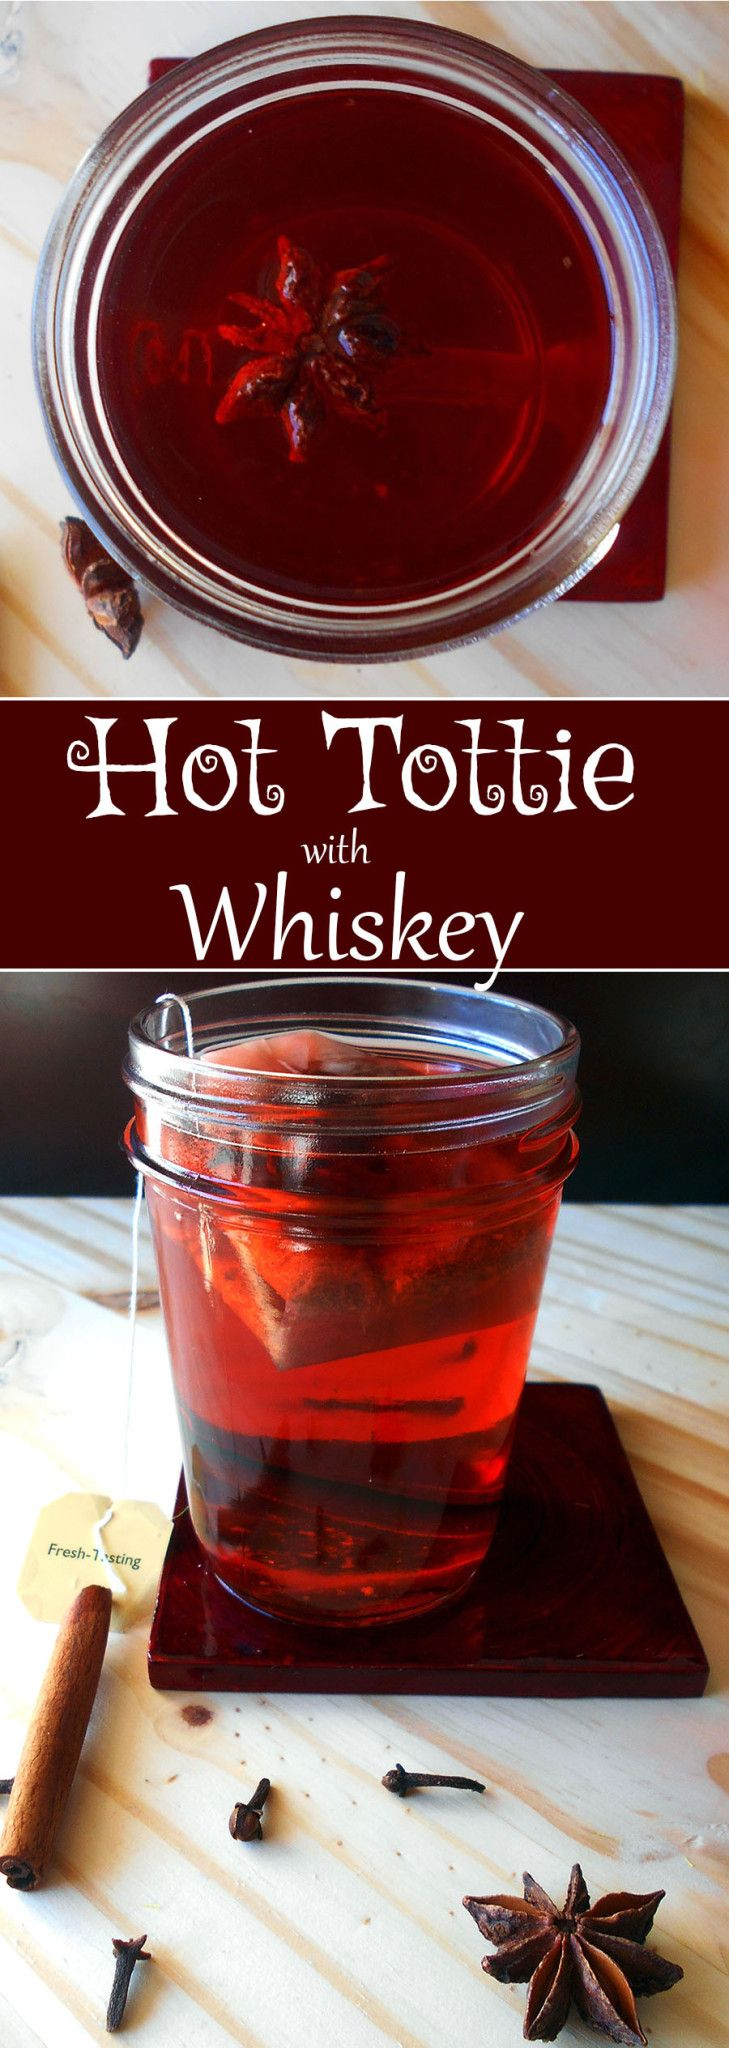 A soothing medicine for Grownups - Made with scotch whiskey, star anise, cloves and cinnamon, it is the most powerful cold and flu fighter. Get a good night's rest and sooth your insides with this hot tottie recipe.